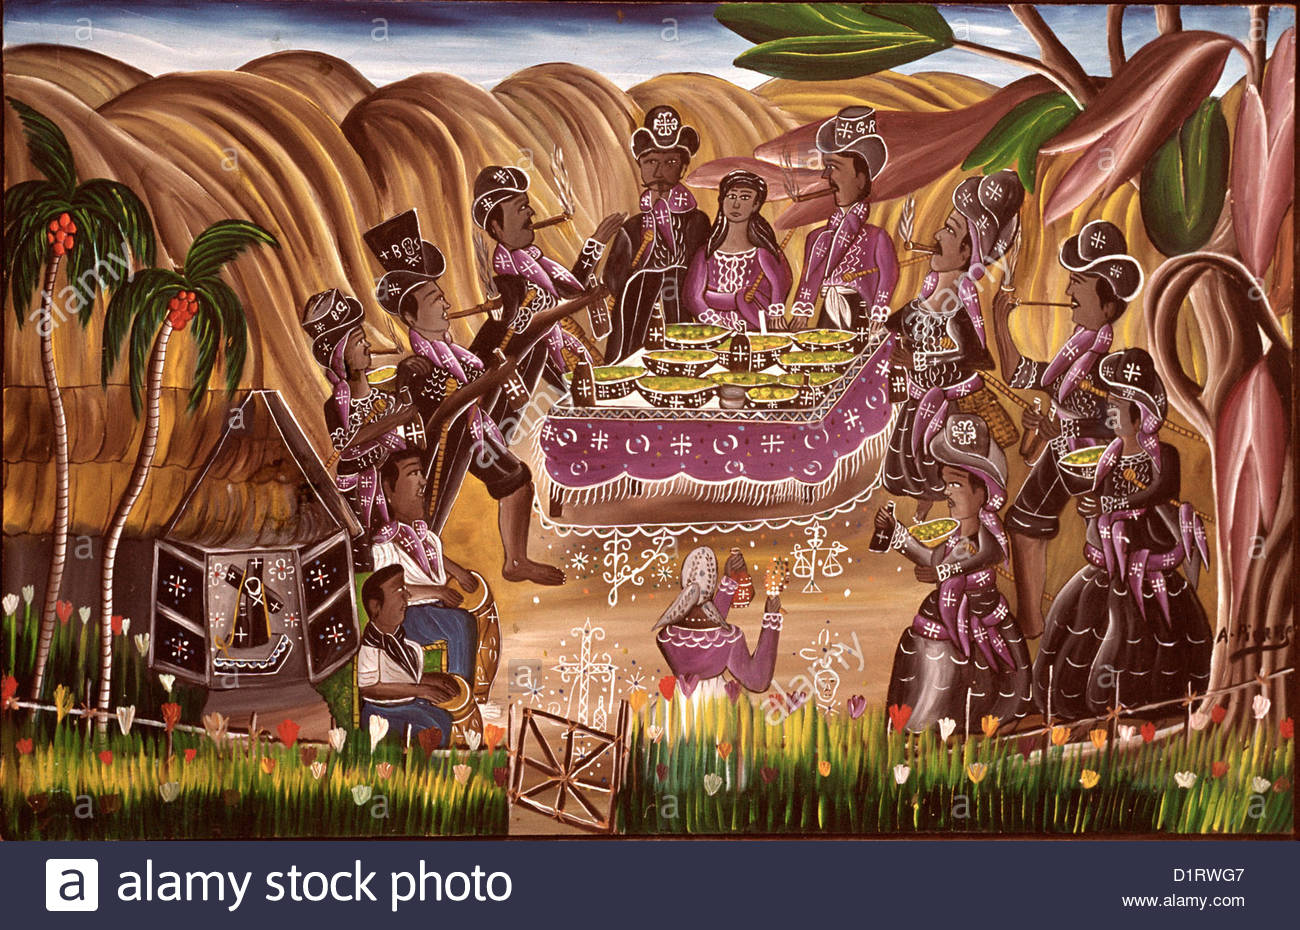 HAITI, Naive painting « The banquet of the Guédés », by Andre Pierre (1915-2005), voodoo priest; - Stock Image